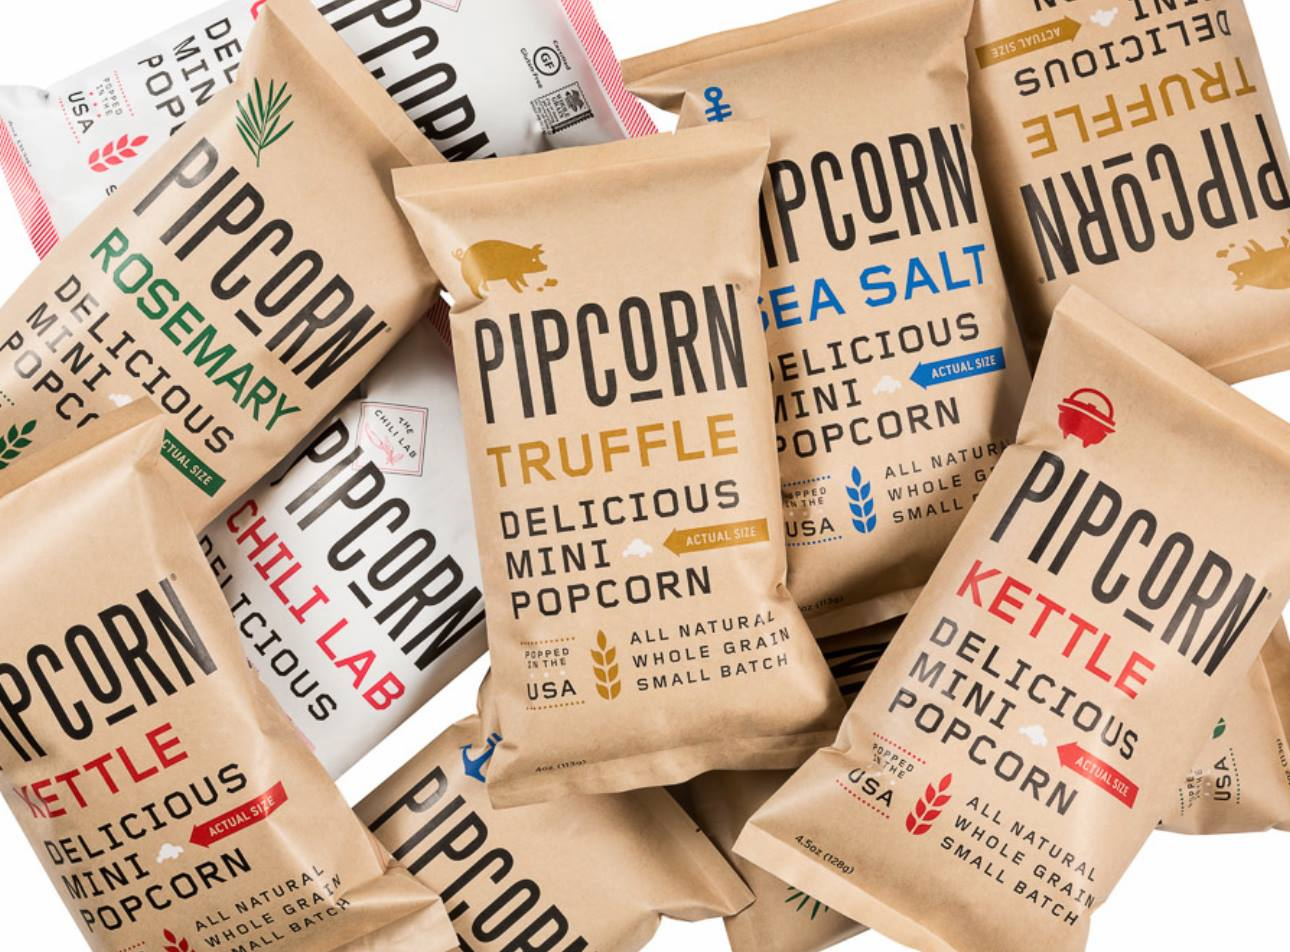 Pipsnacks LLC Announces Partnership With Factory LLC